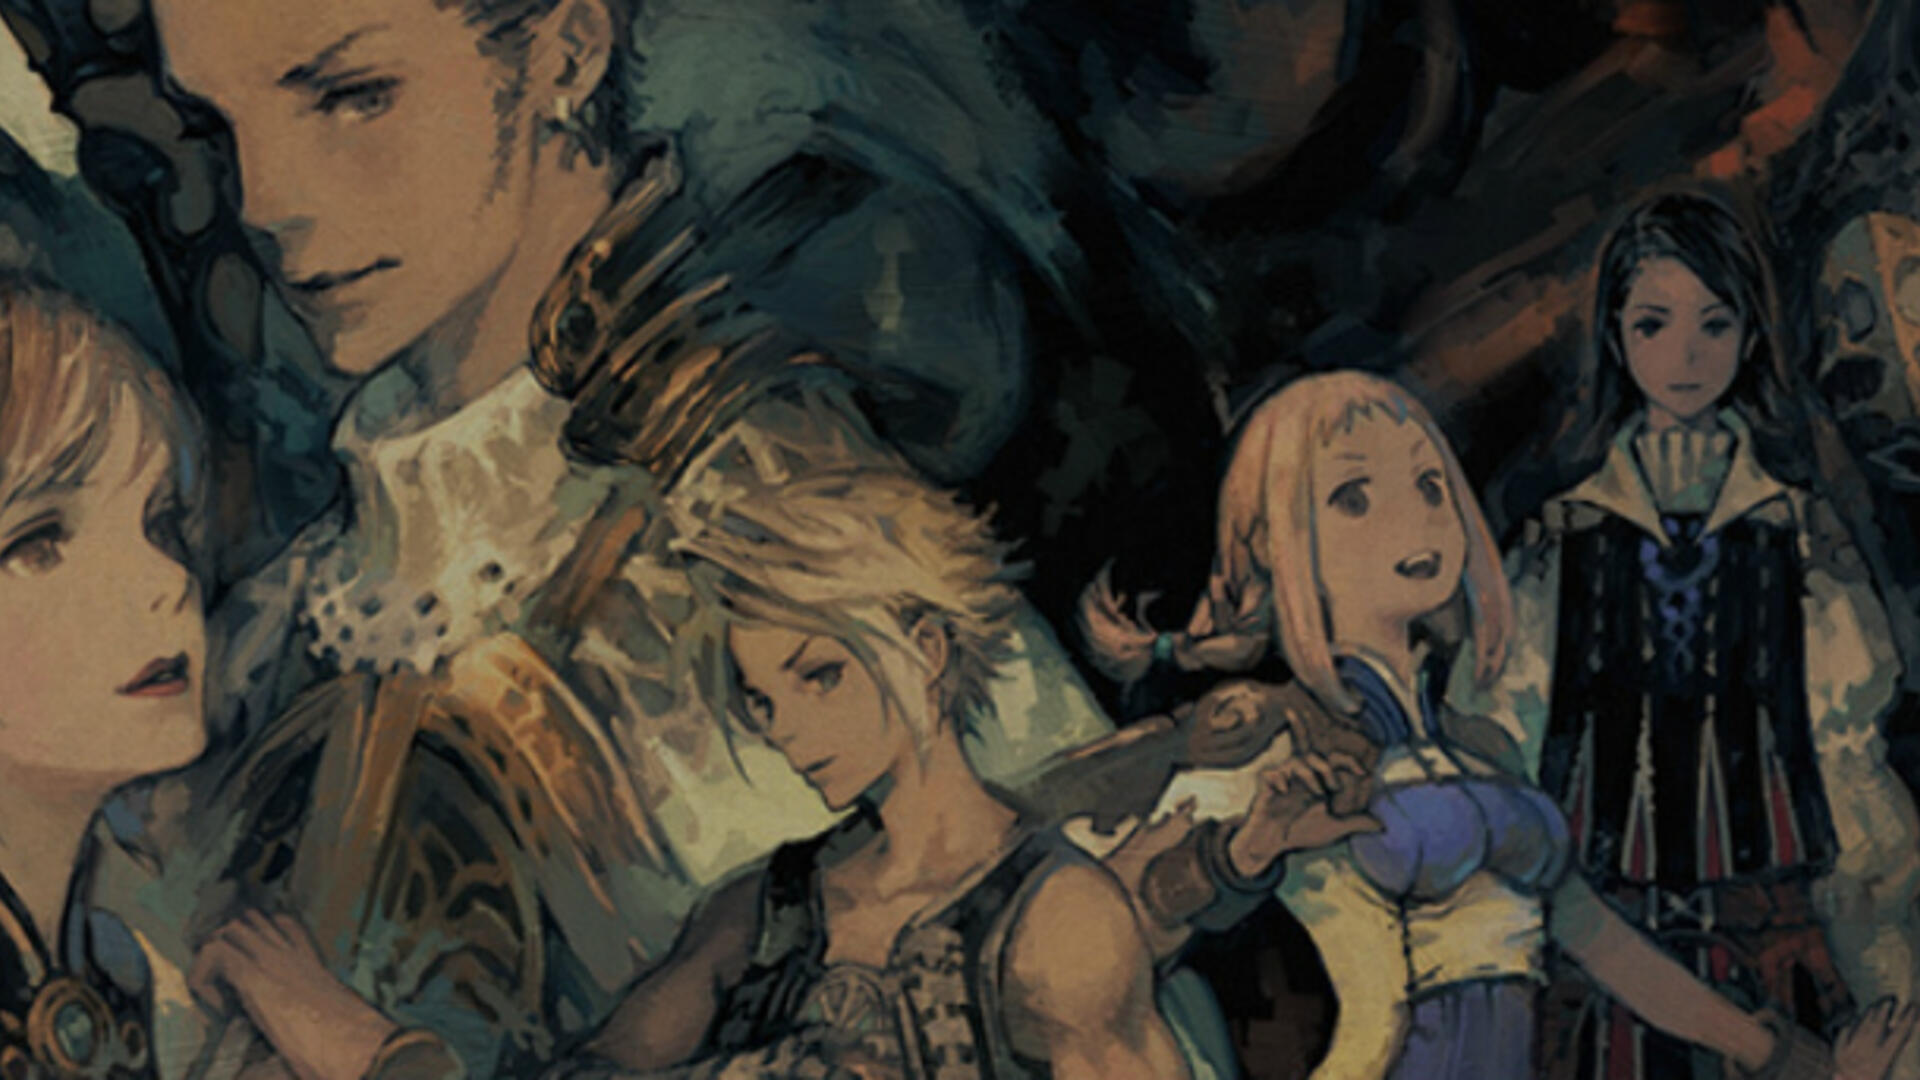 Final Fantasy XII The Zodiac Age: Revisiting a Black Sheep With a Decade of Perspective